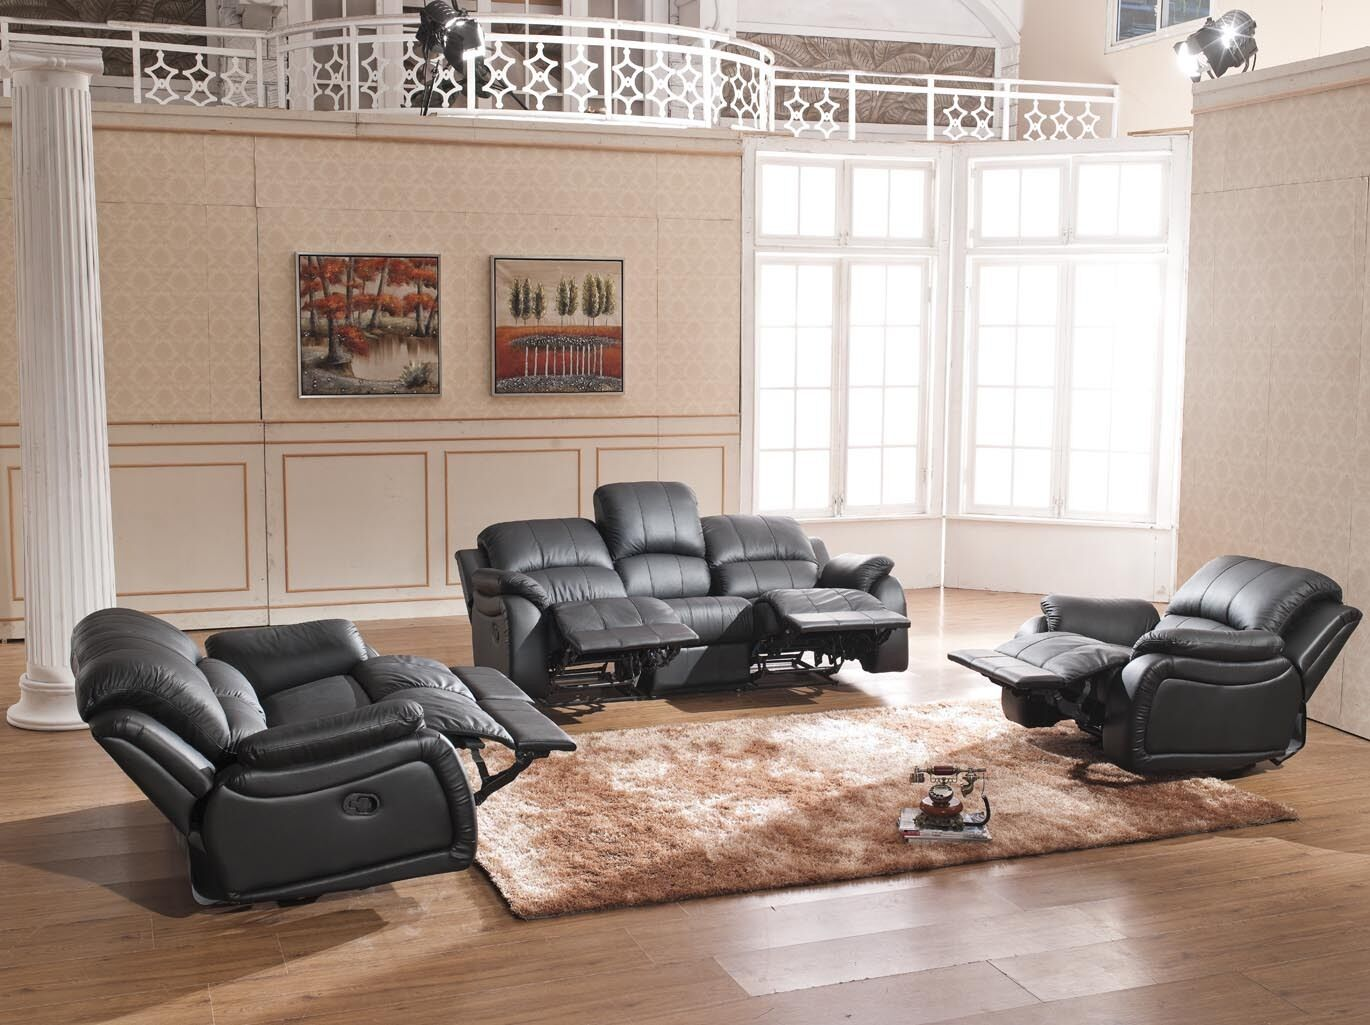 moebel shop de gutschein perfect with moebel shop de gutschein fabulous lambert stanhope sofa. Black Bedroom Furniture Sets. Home Design Ideas